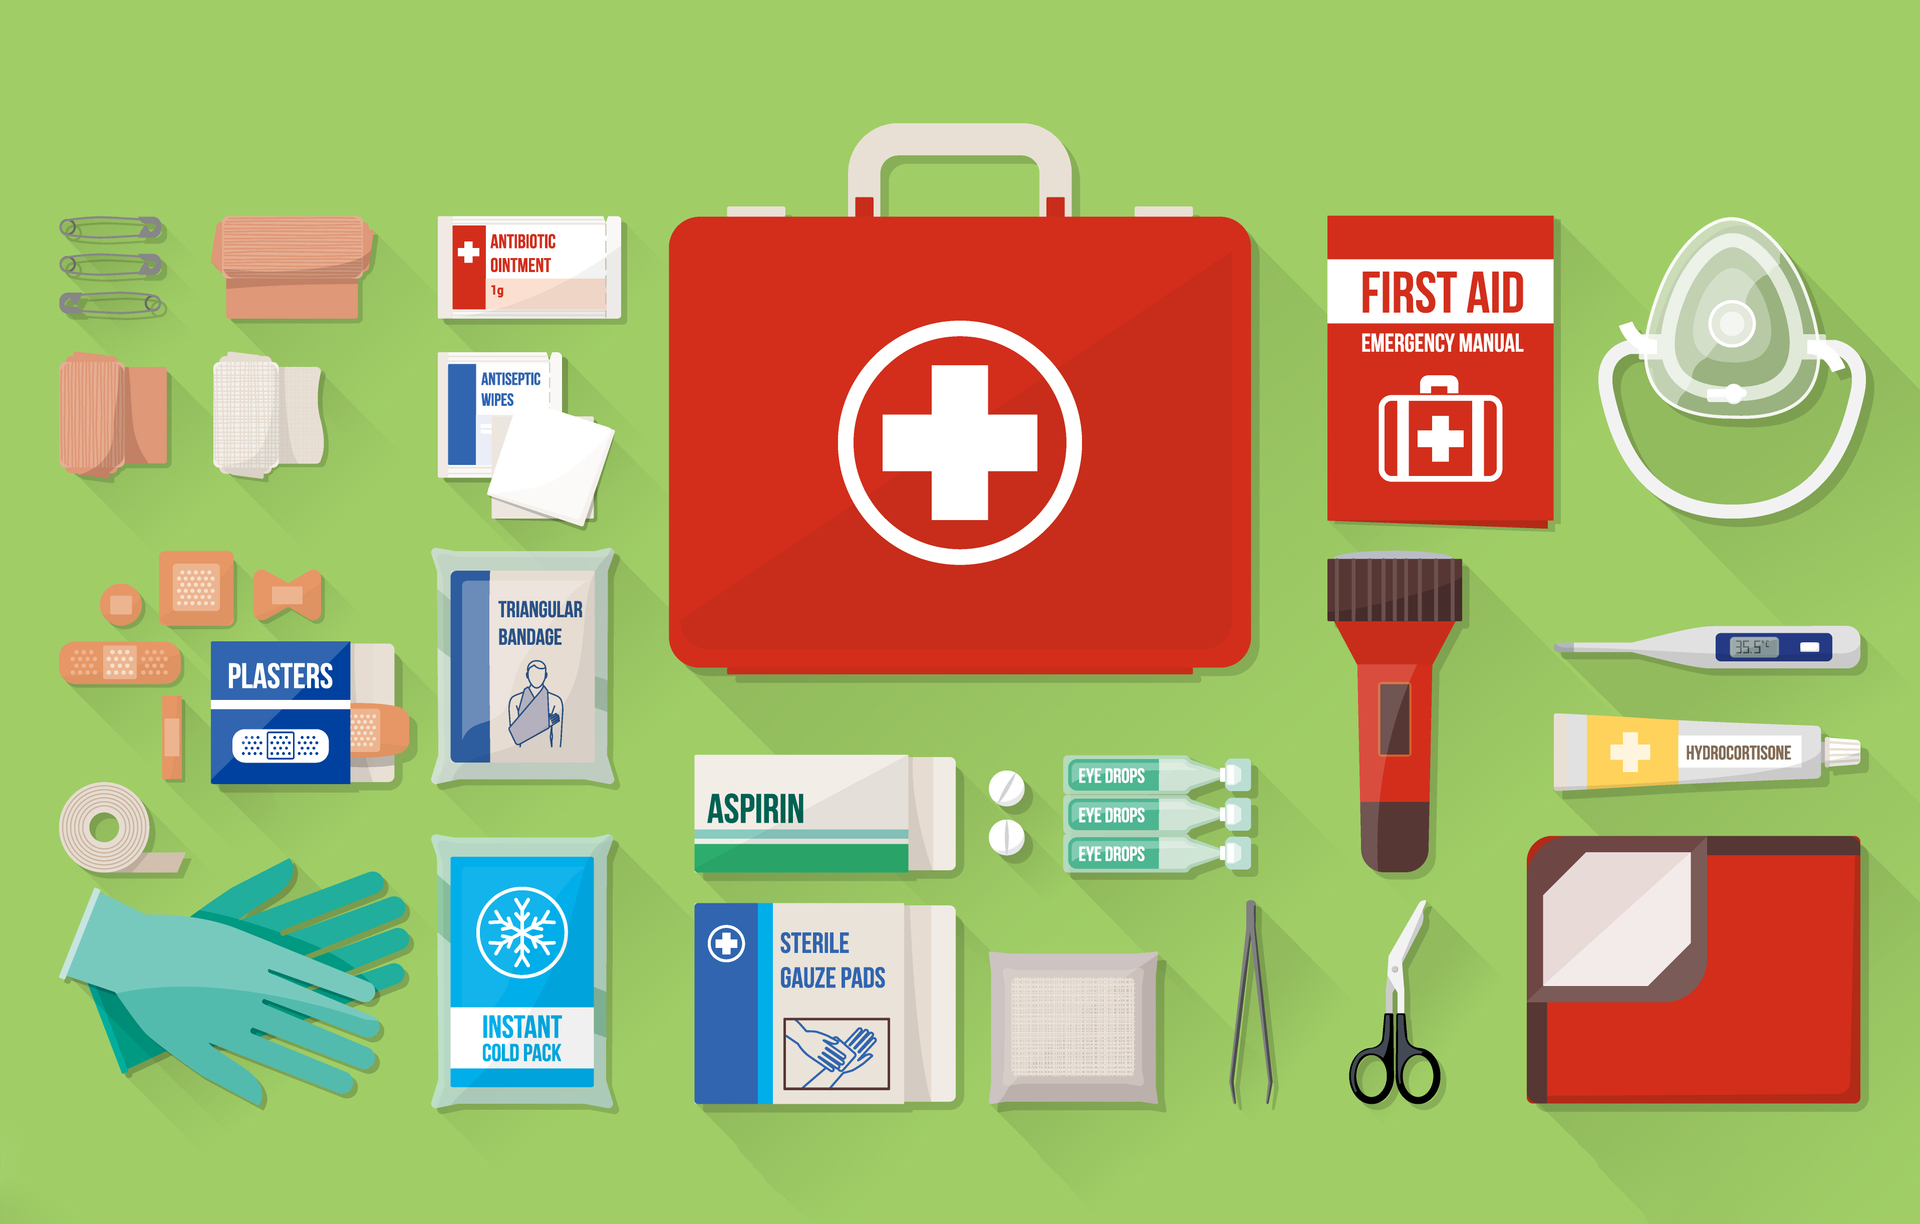 What's needed in a first aid kit